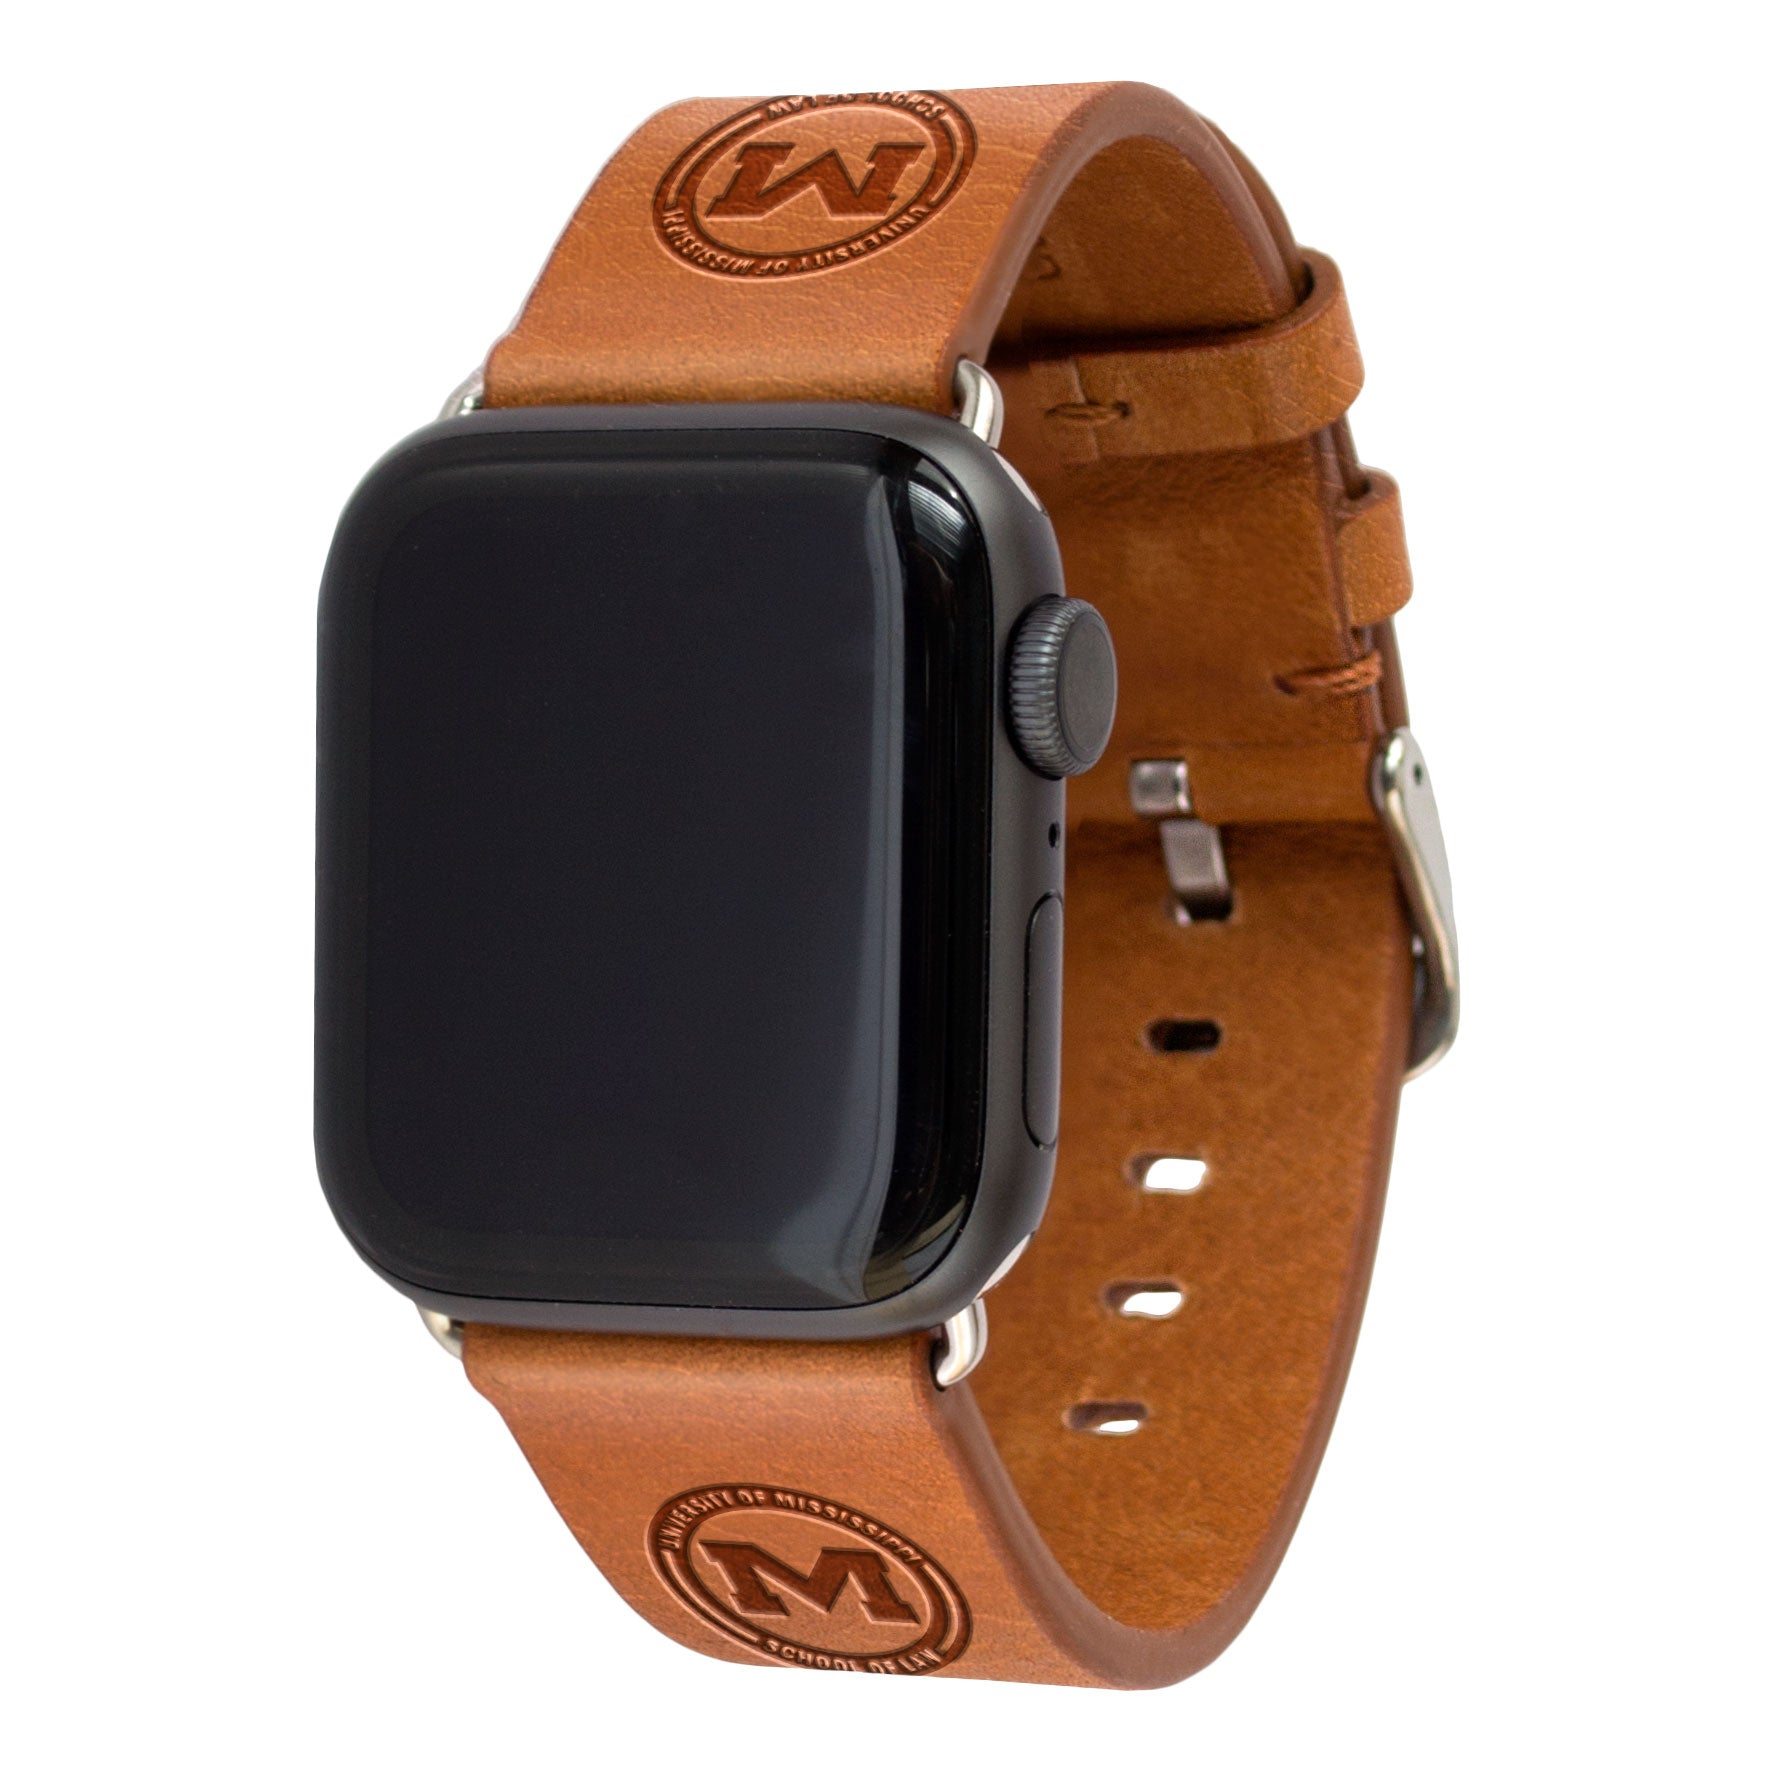 University of Mississippi College of Law Leather Apple Watch Band